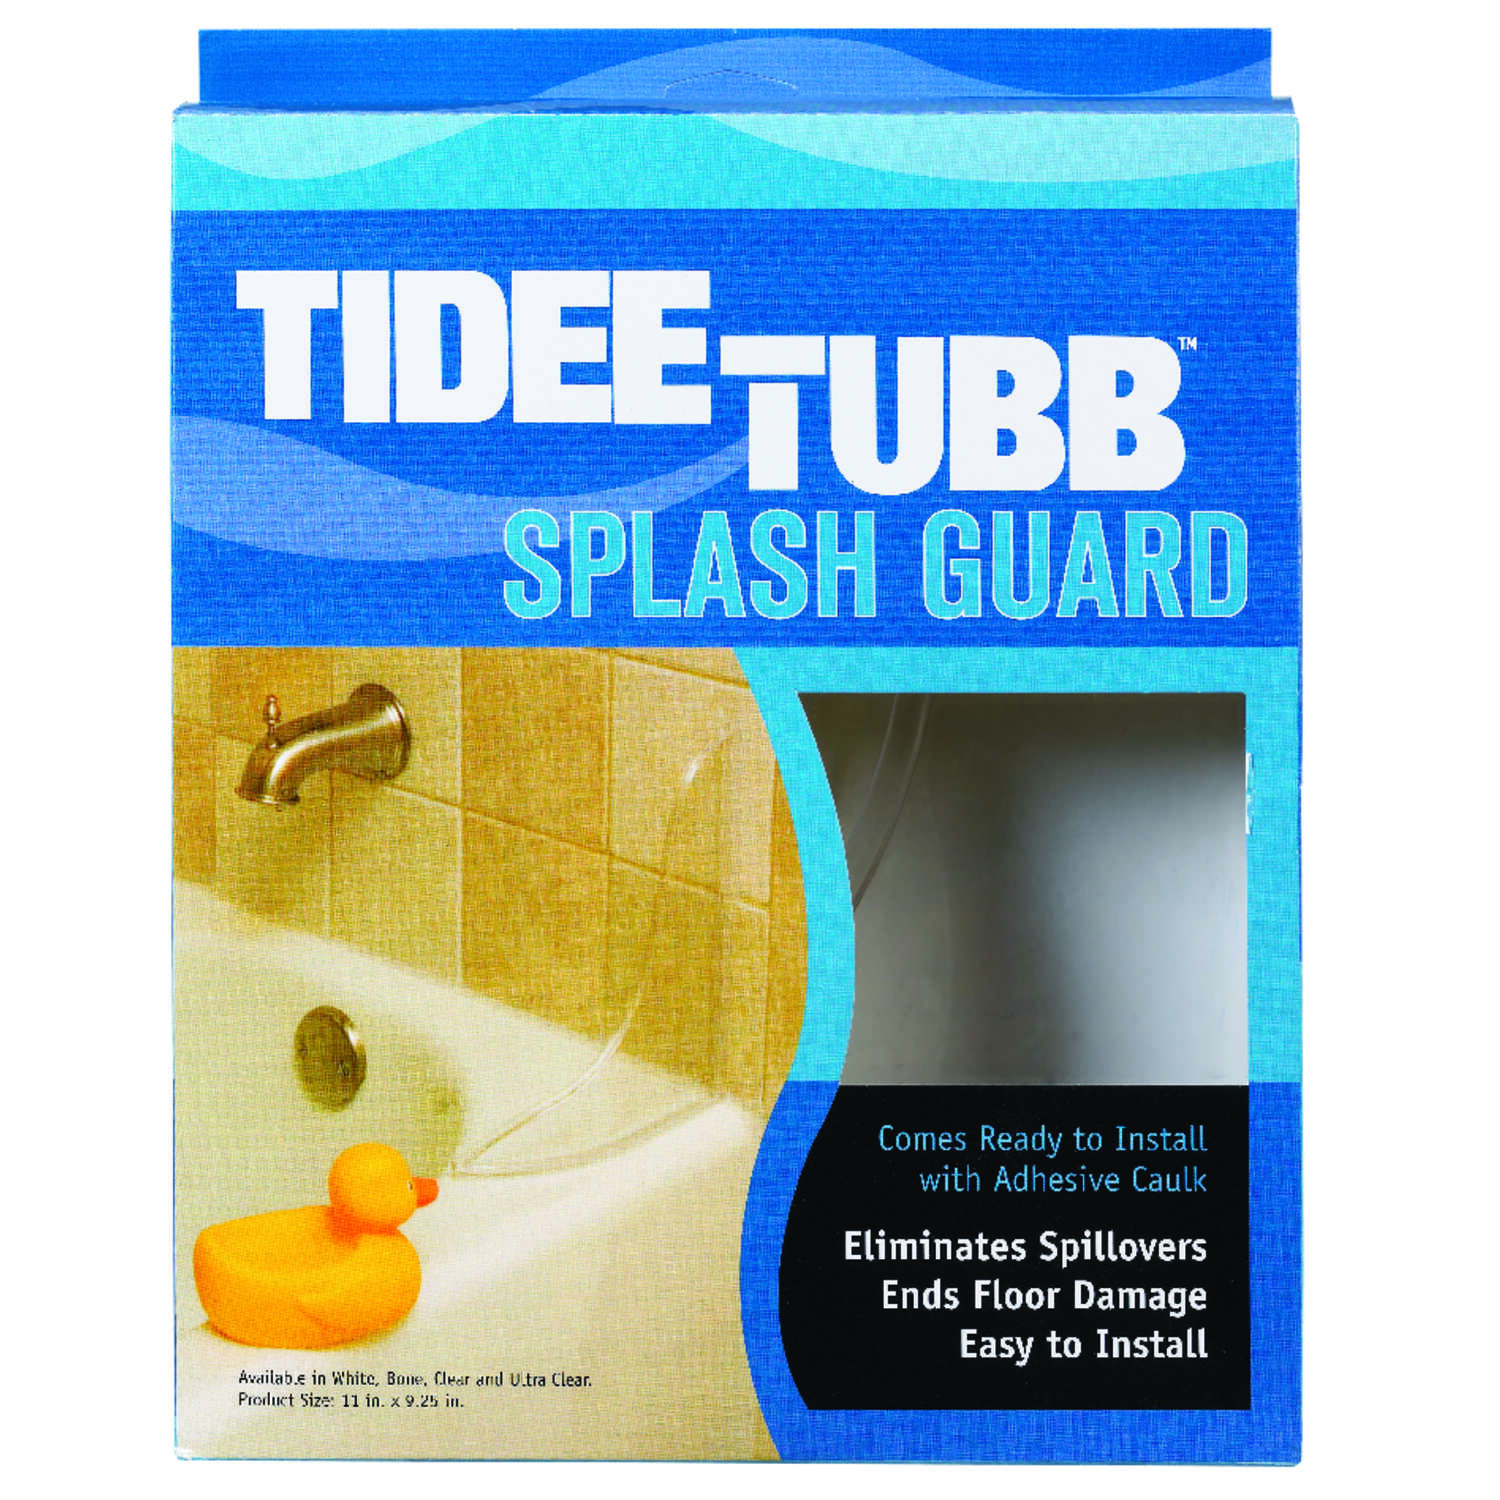 Plumb Pak  Tidee-Tubb  Splash Guard  11 in. H x 9.3 in. L Ultra Clear  Plastic